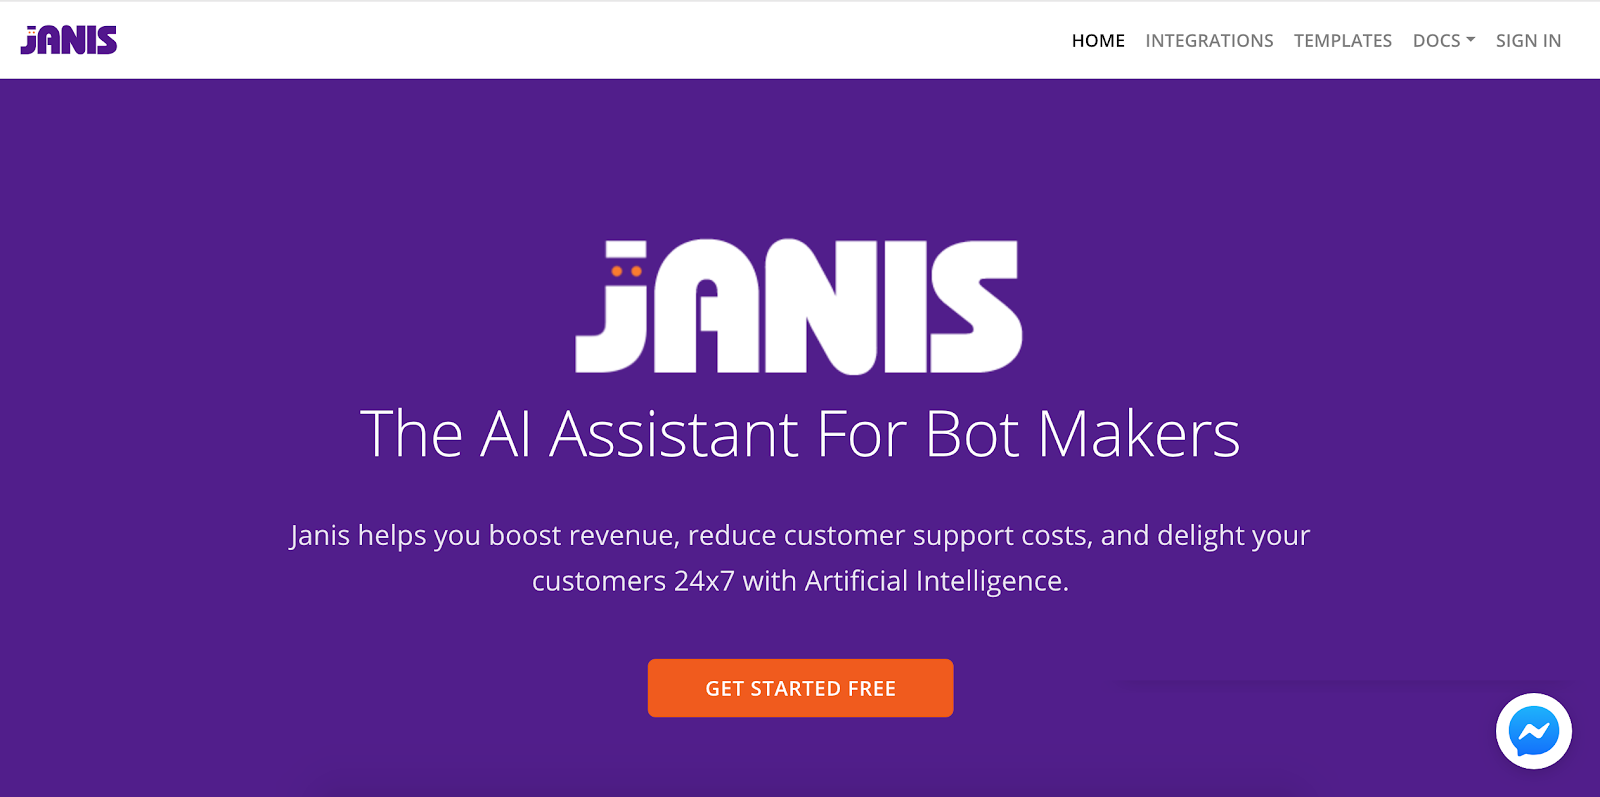 Top Marketing Tool Example #14 - Janis.AI | 16 Powerful Marketing Tools You Haven't Considered (But Probably Should)